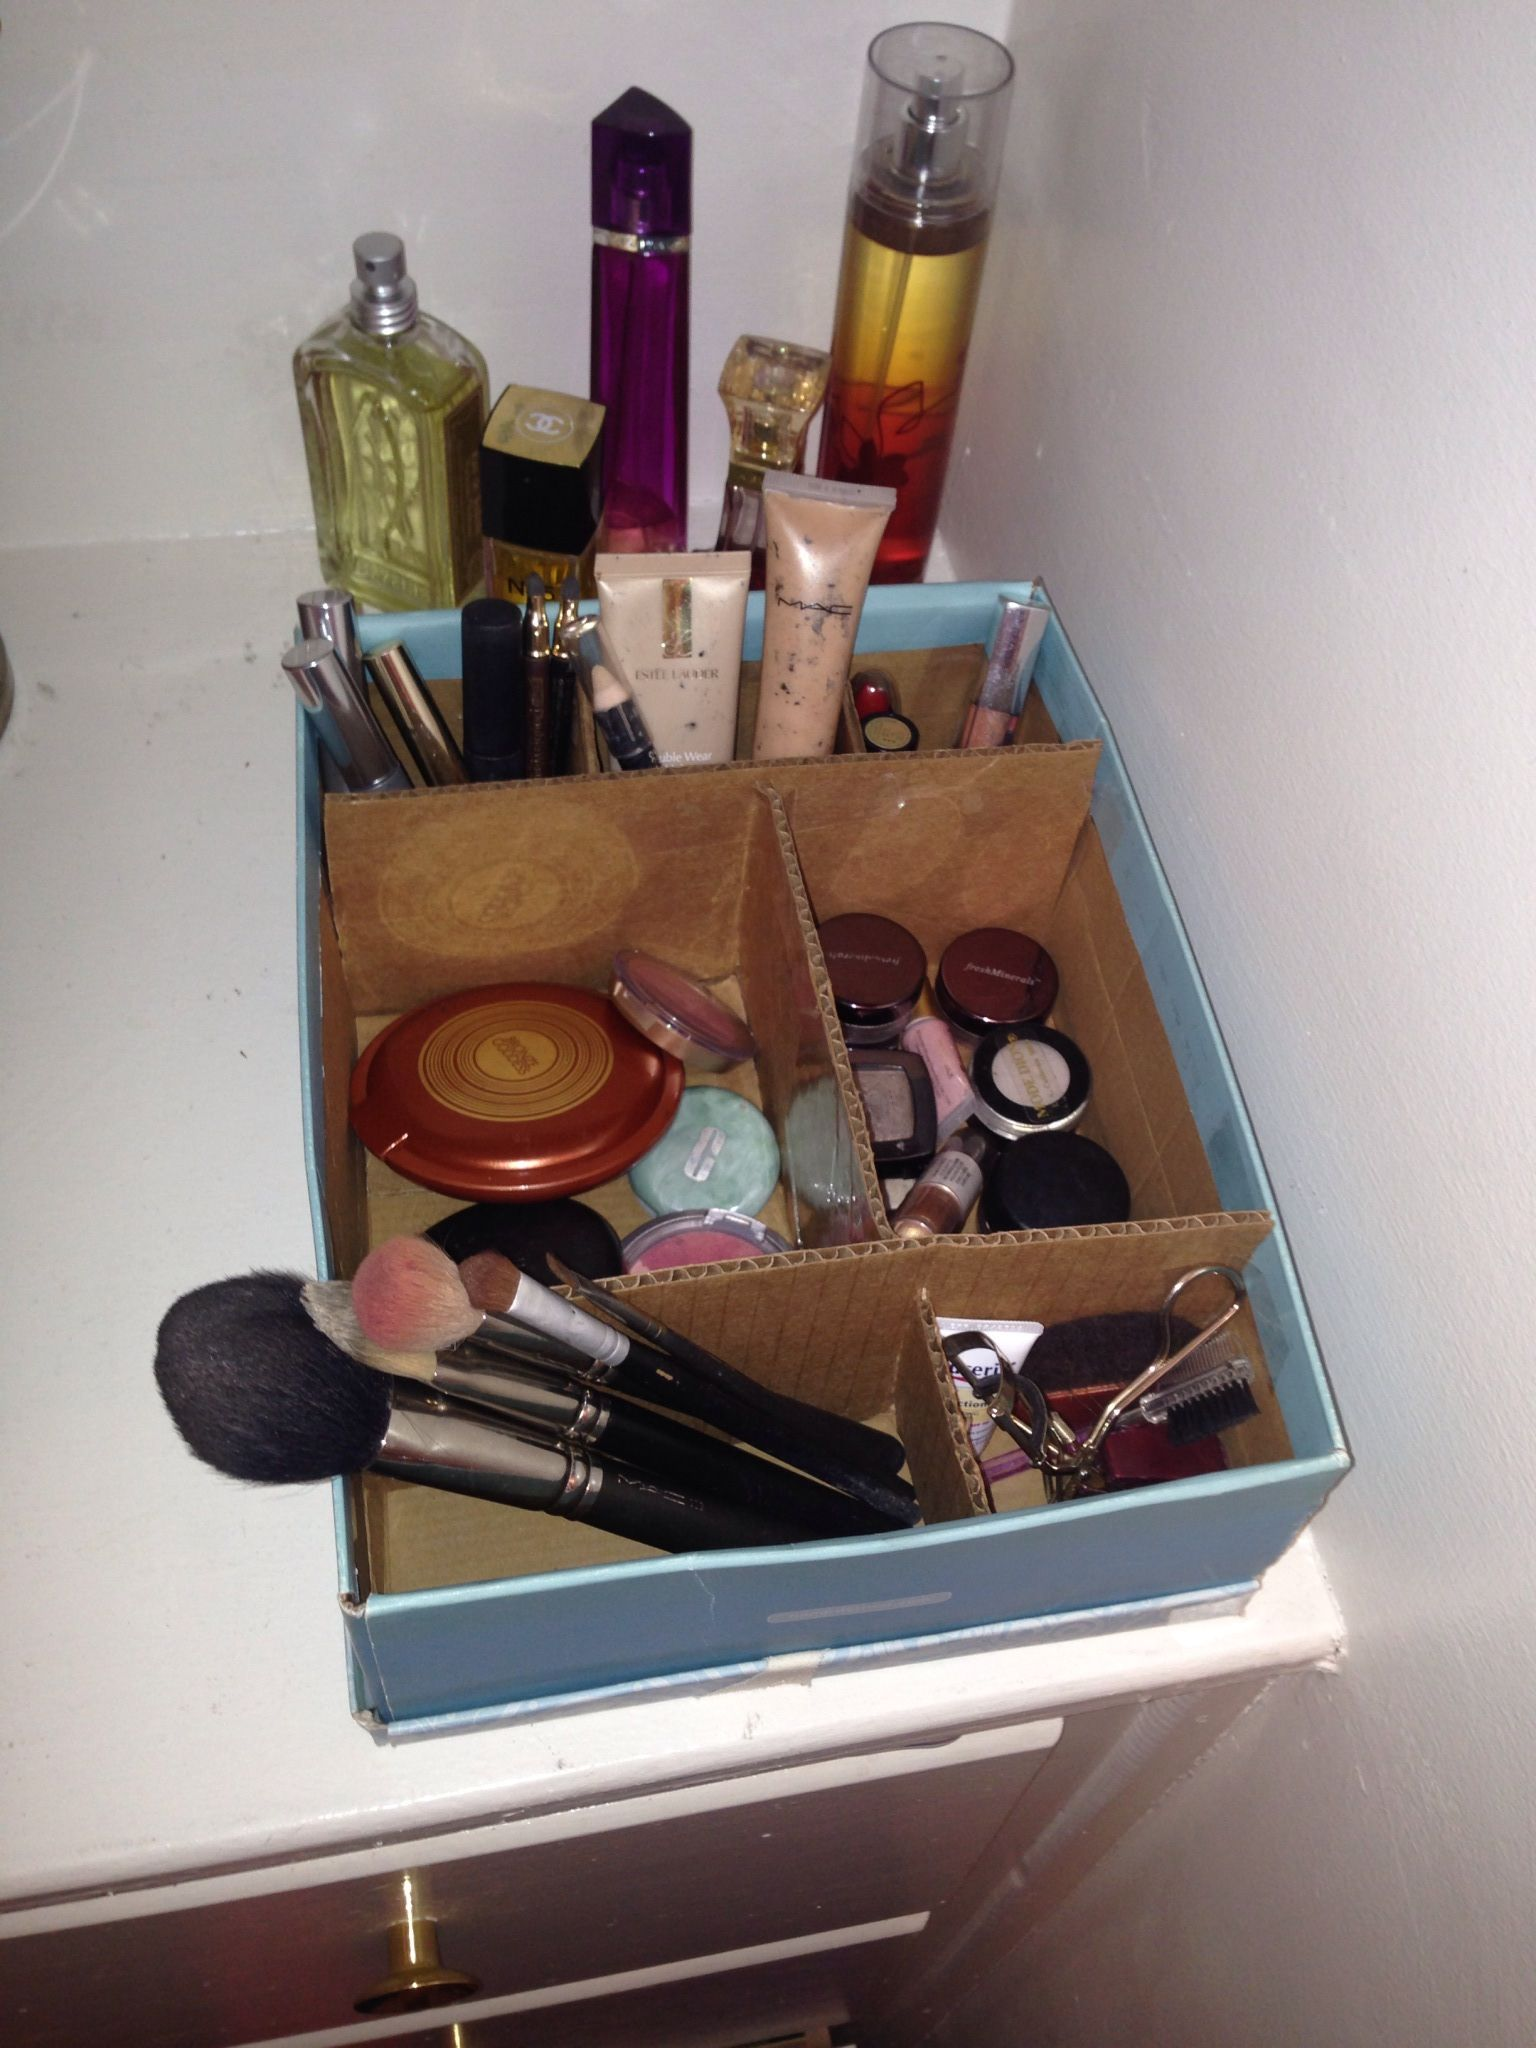 DIY makeup organizer idea I had that worked for me! shoe